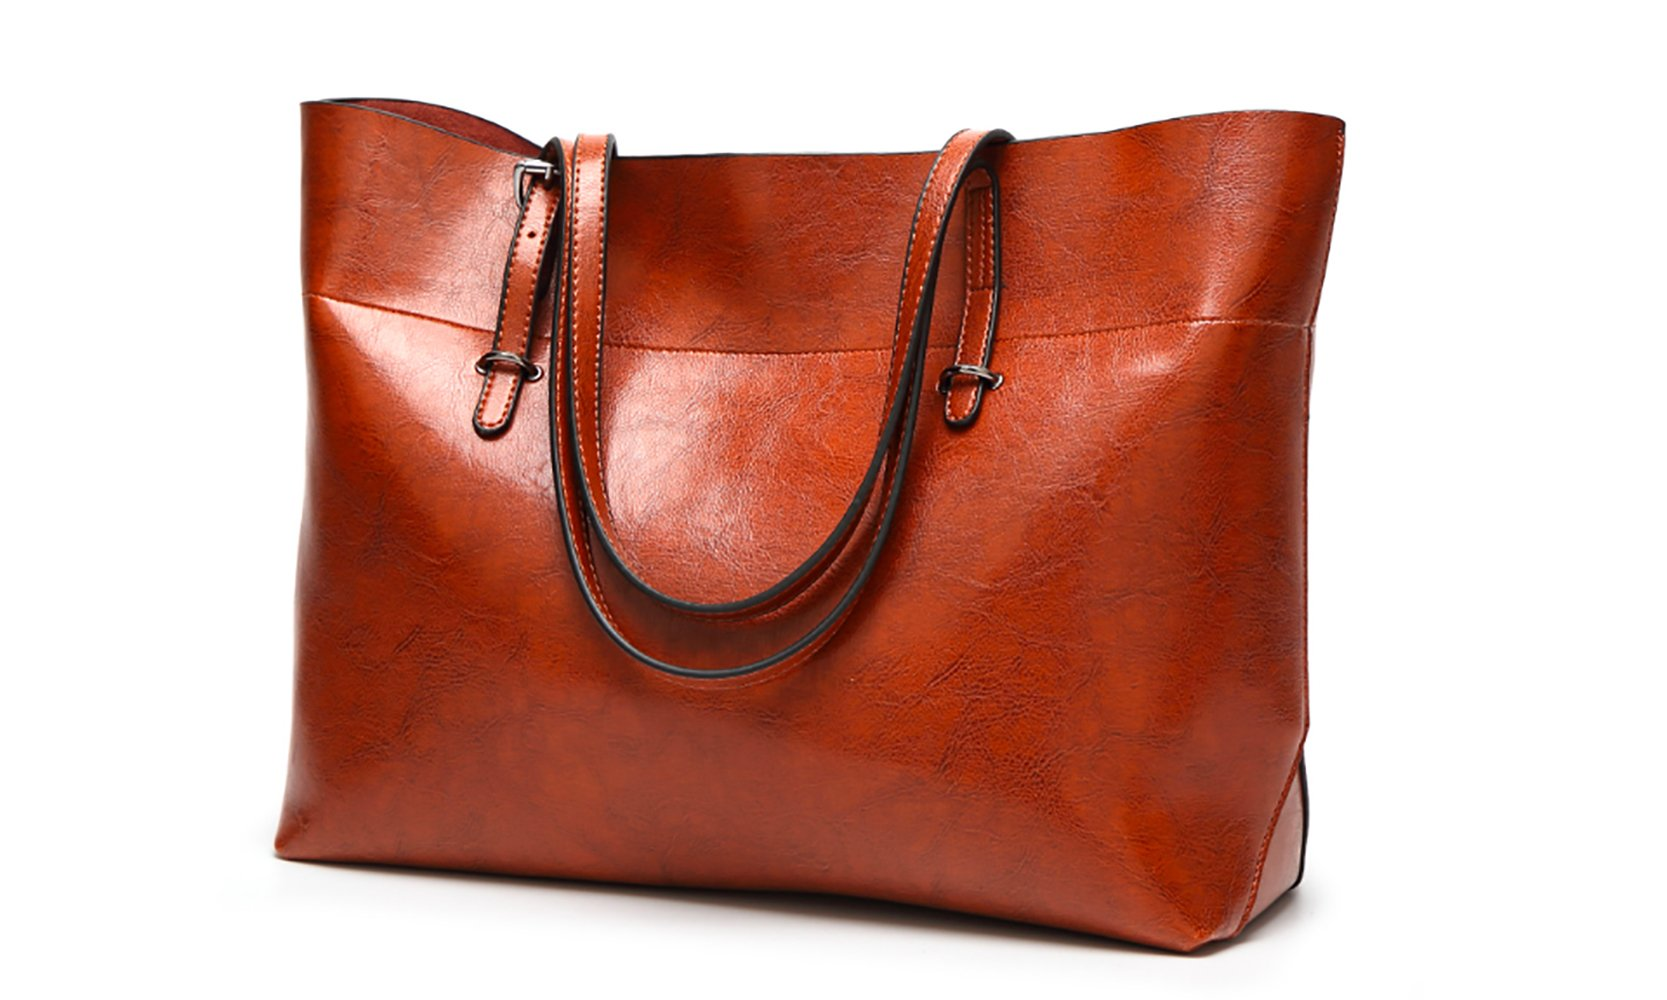 Women's Vintage Fine Fibre Genuine Leather Bag Tote Shoulder Bag Handbag Model Sie Brown